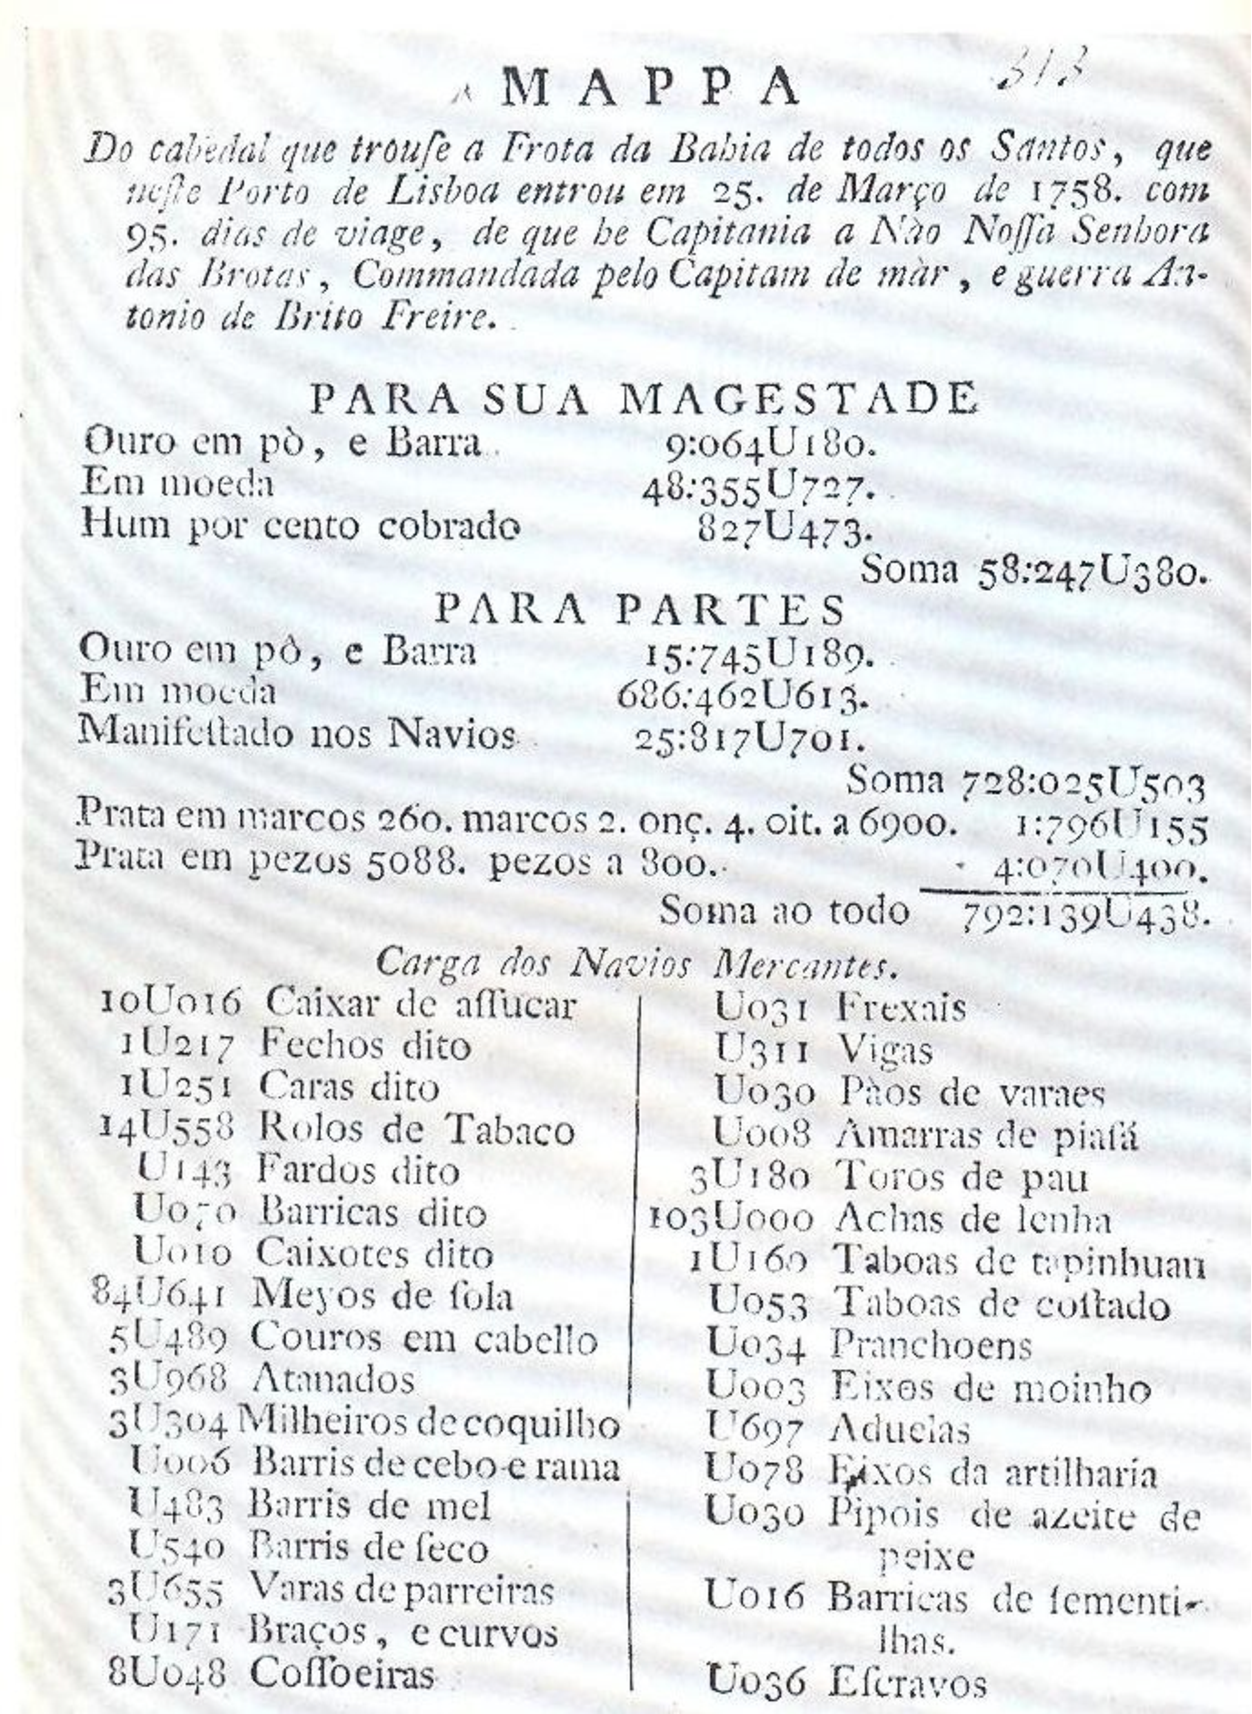 Brazilian Gold and the Lisbon Mint House (1720-1807)